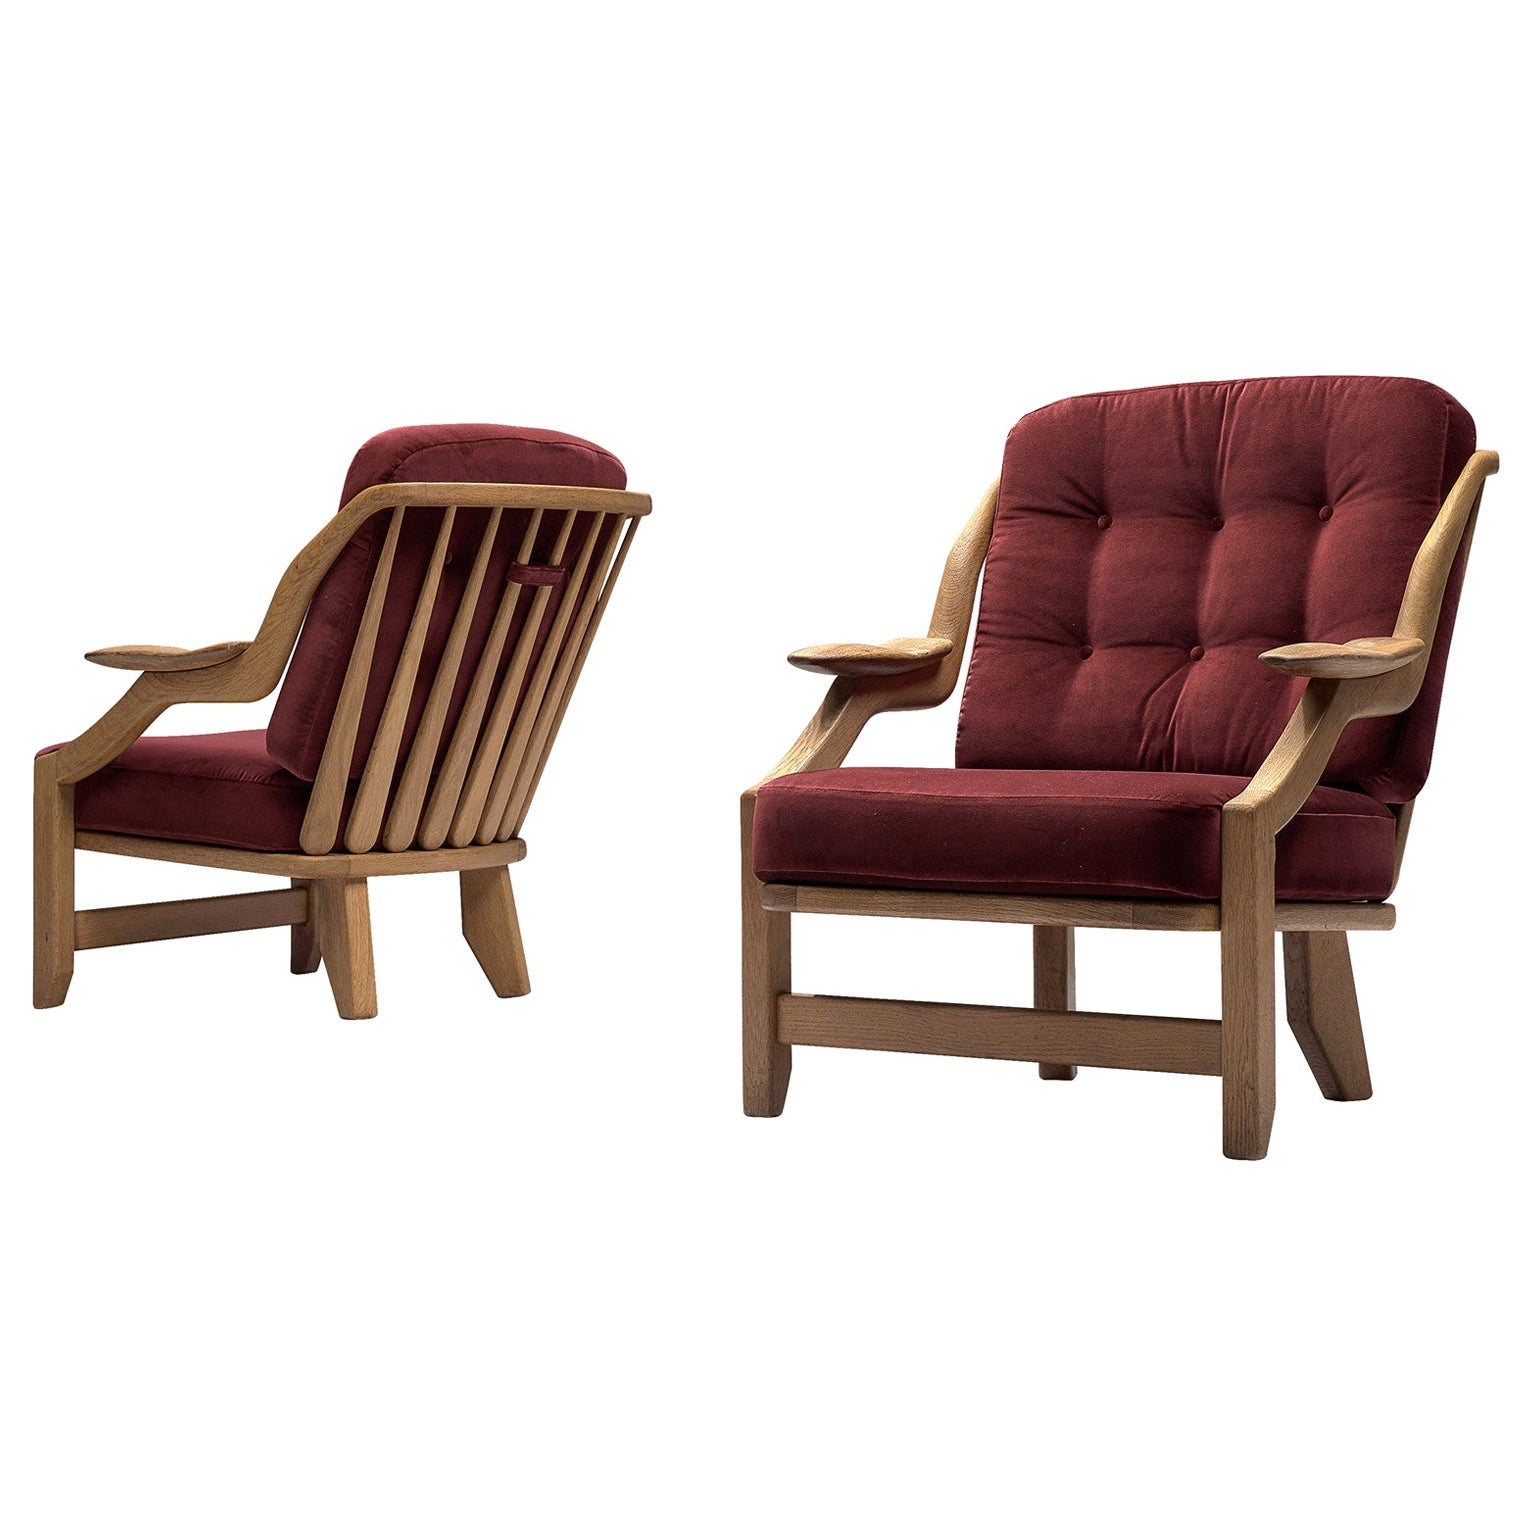 Pair of Guillerme et Chambron Lounge Chairs in Burgundy Upholstery